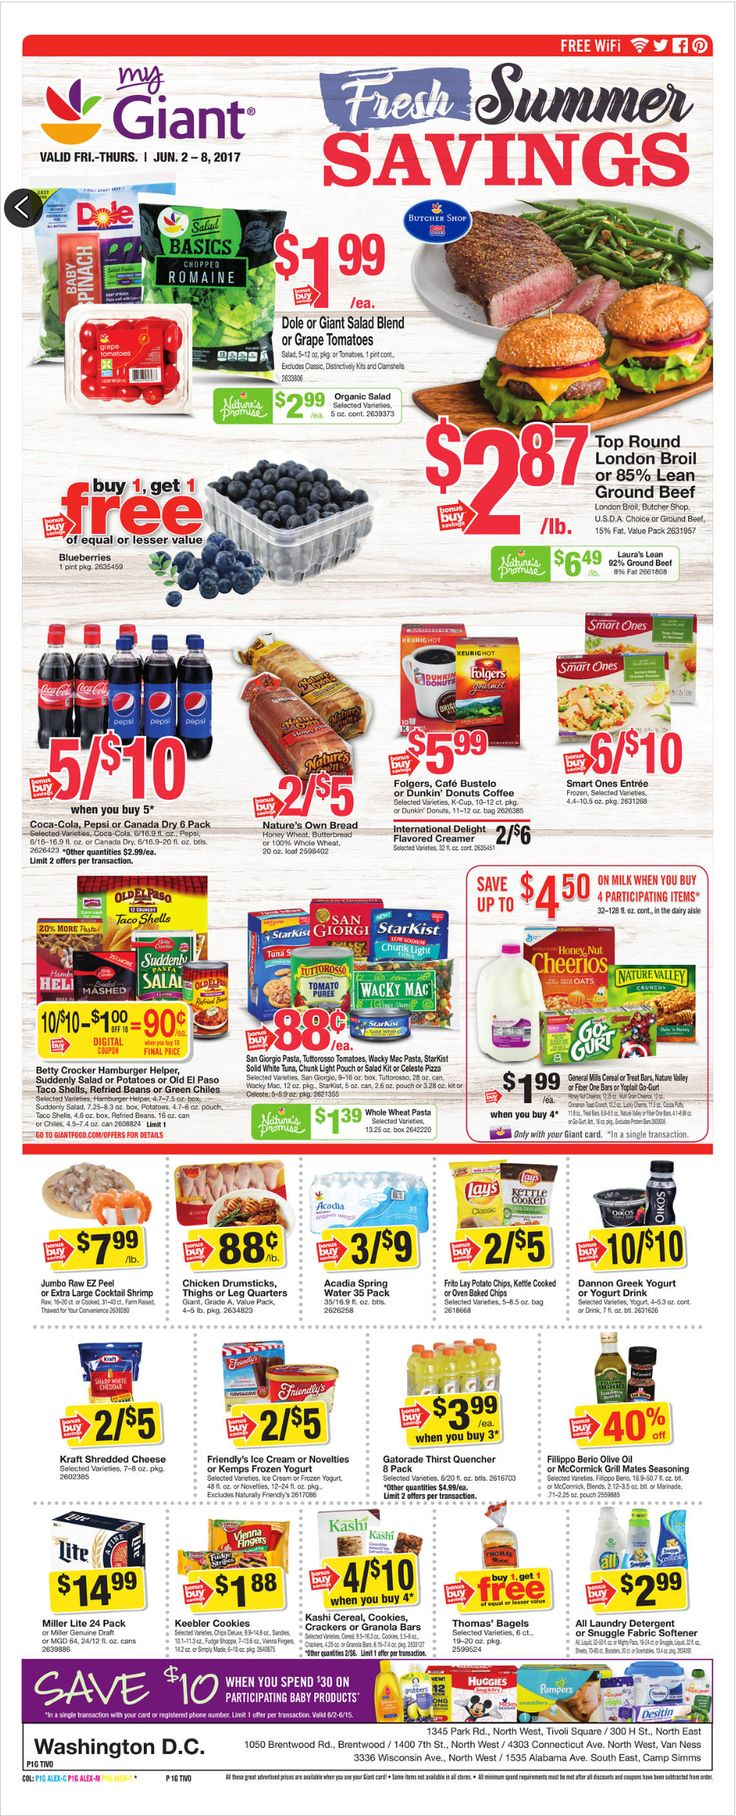 Giant Food Weekly Ad June 2 - 8, 2017 - http://www.olcatalog.com/grocery/giant-food-weekly-ad.html